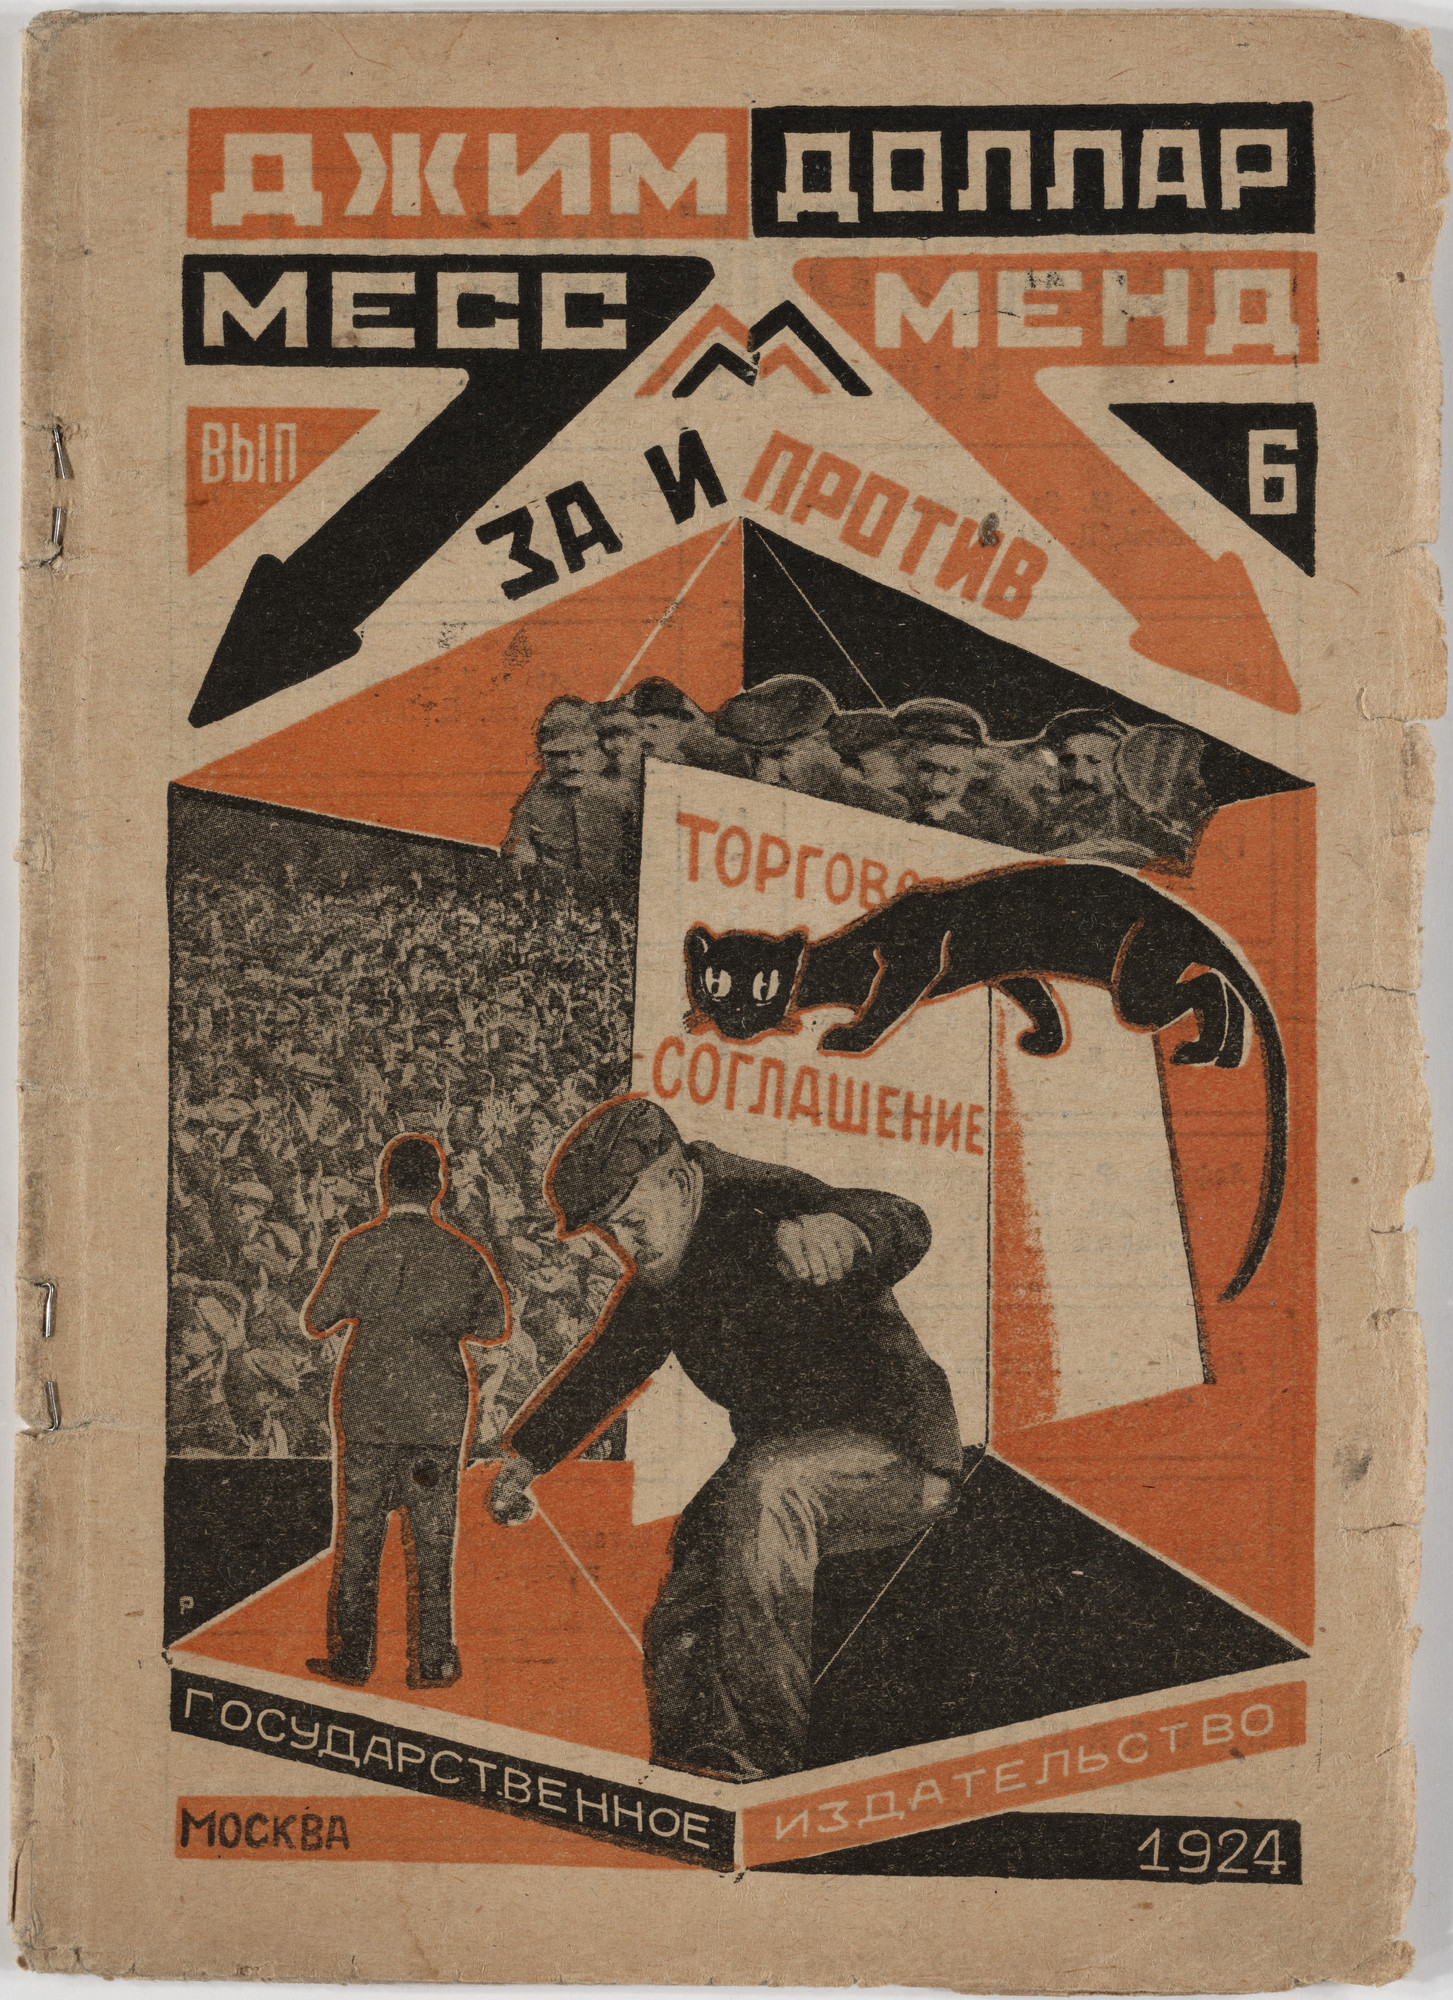 "Aleksandr Rodchenko. ""A Yankee in Petrograd"" Vol. 6 Pro and Con by Jim Dollar (Marietta Saginyan). 1924"